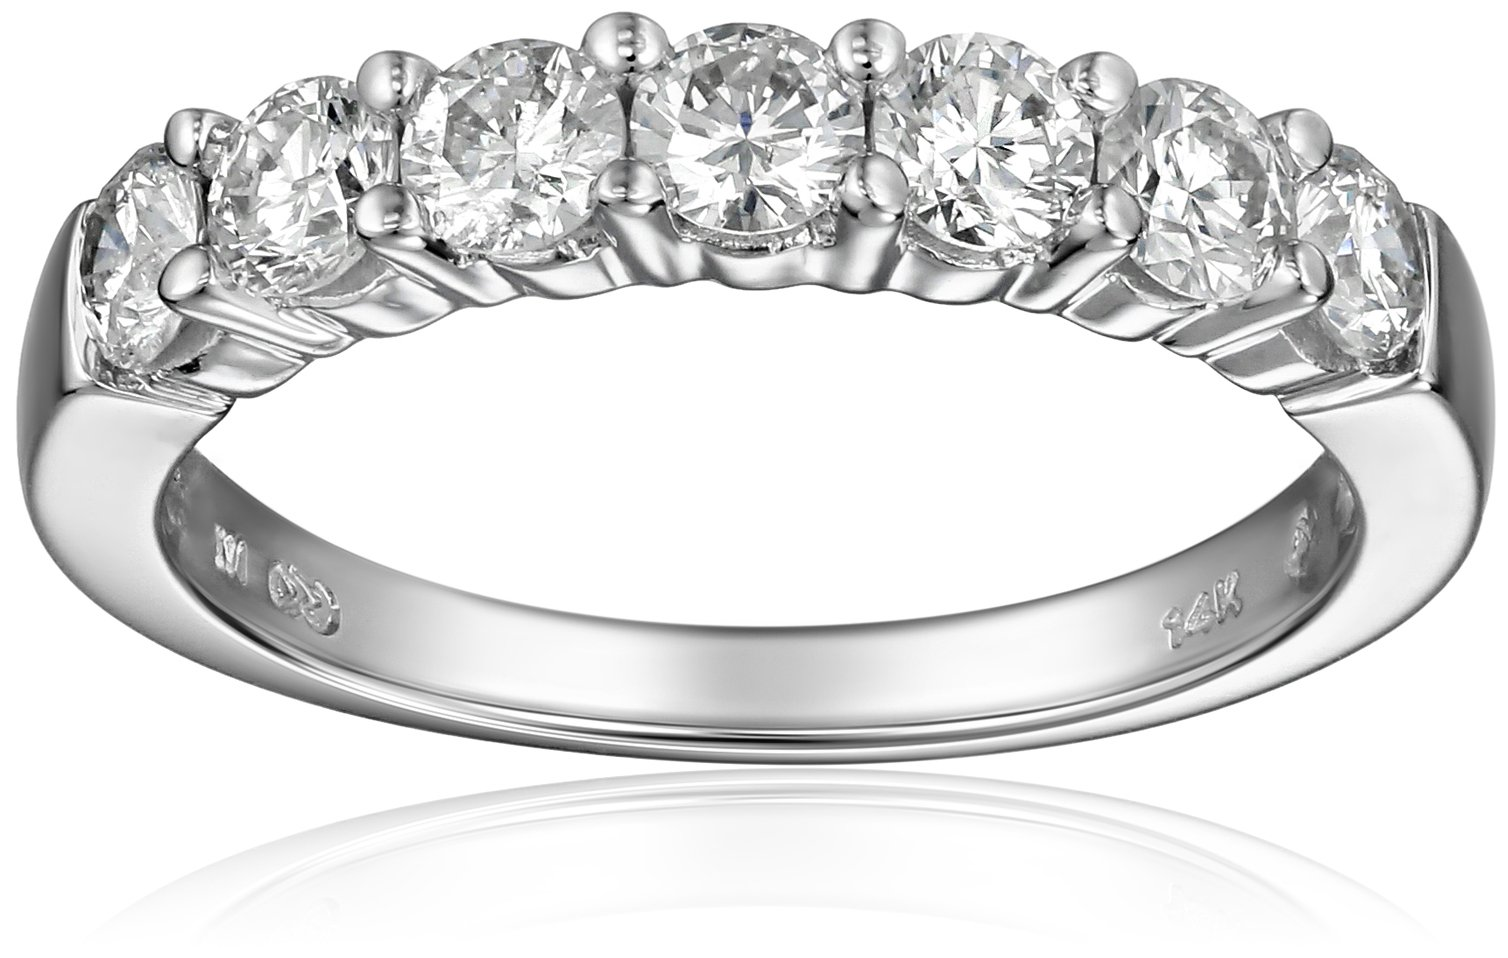 14k White Gold 7-Stone Diamond Ring (1 cttw, H-I Color, I1-I2 Clarity), Size 6